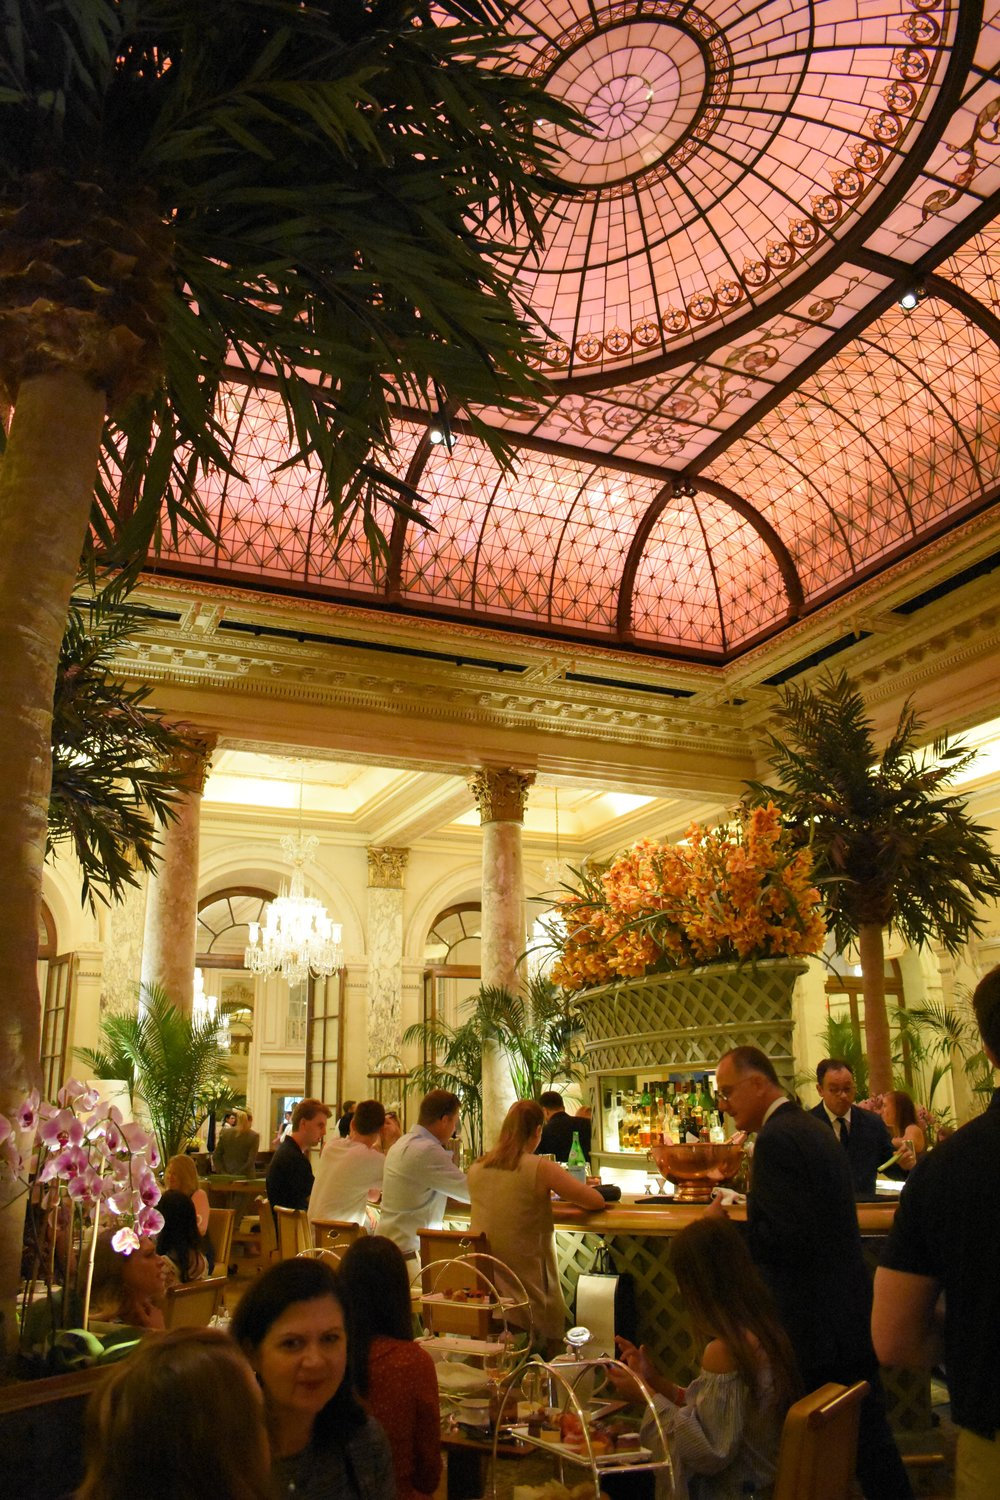 The Champagne Bar at the Palm Court at the Plaza. I'll be back...